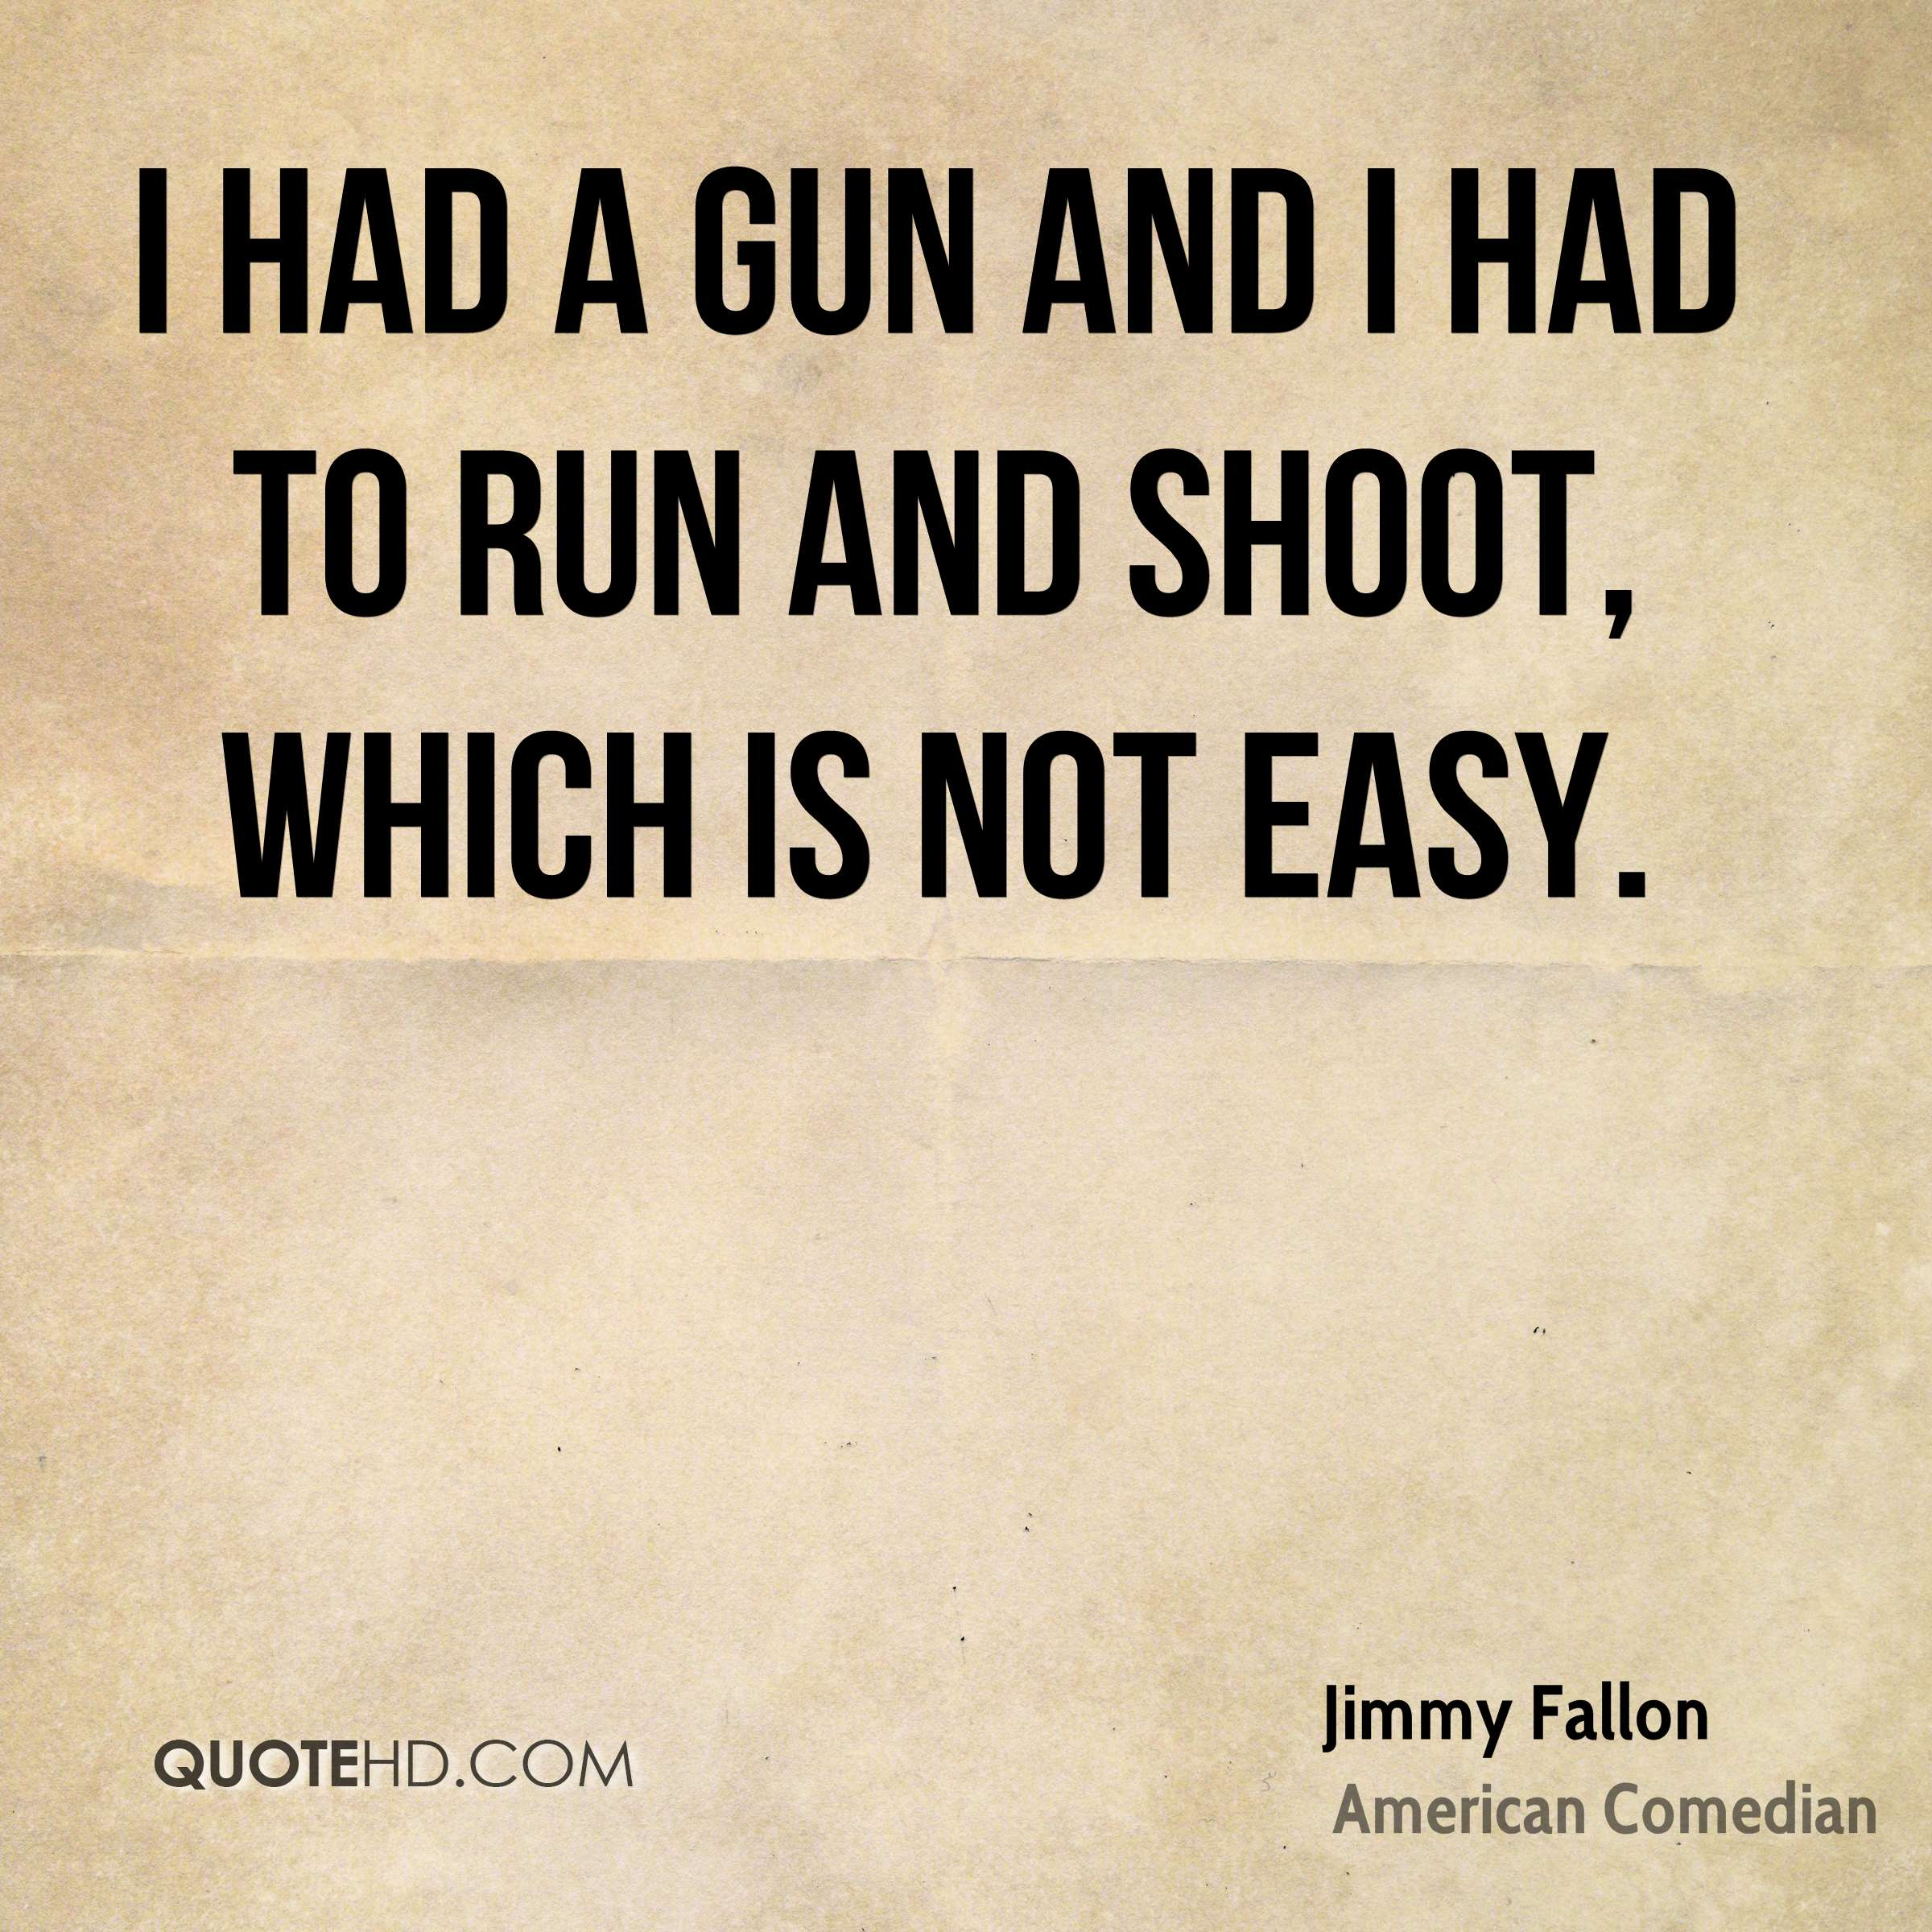 I had a gun and I had to run and shoot, which is not easy.